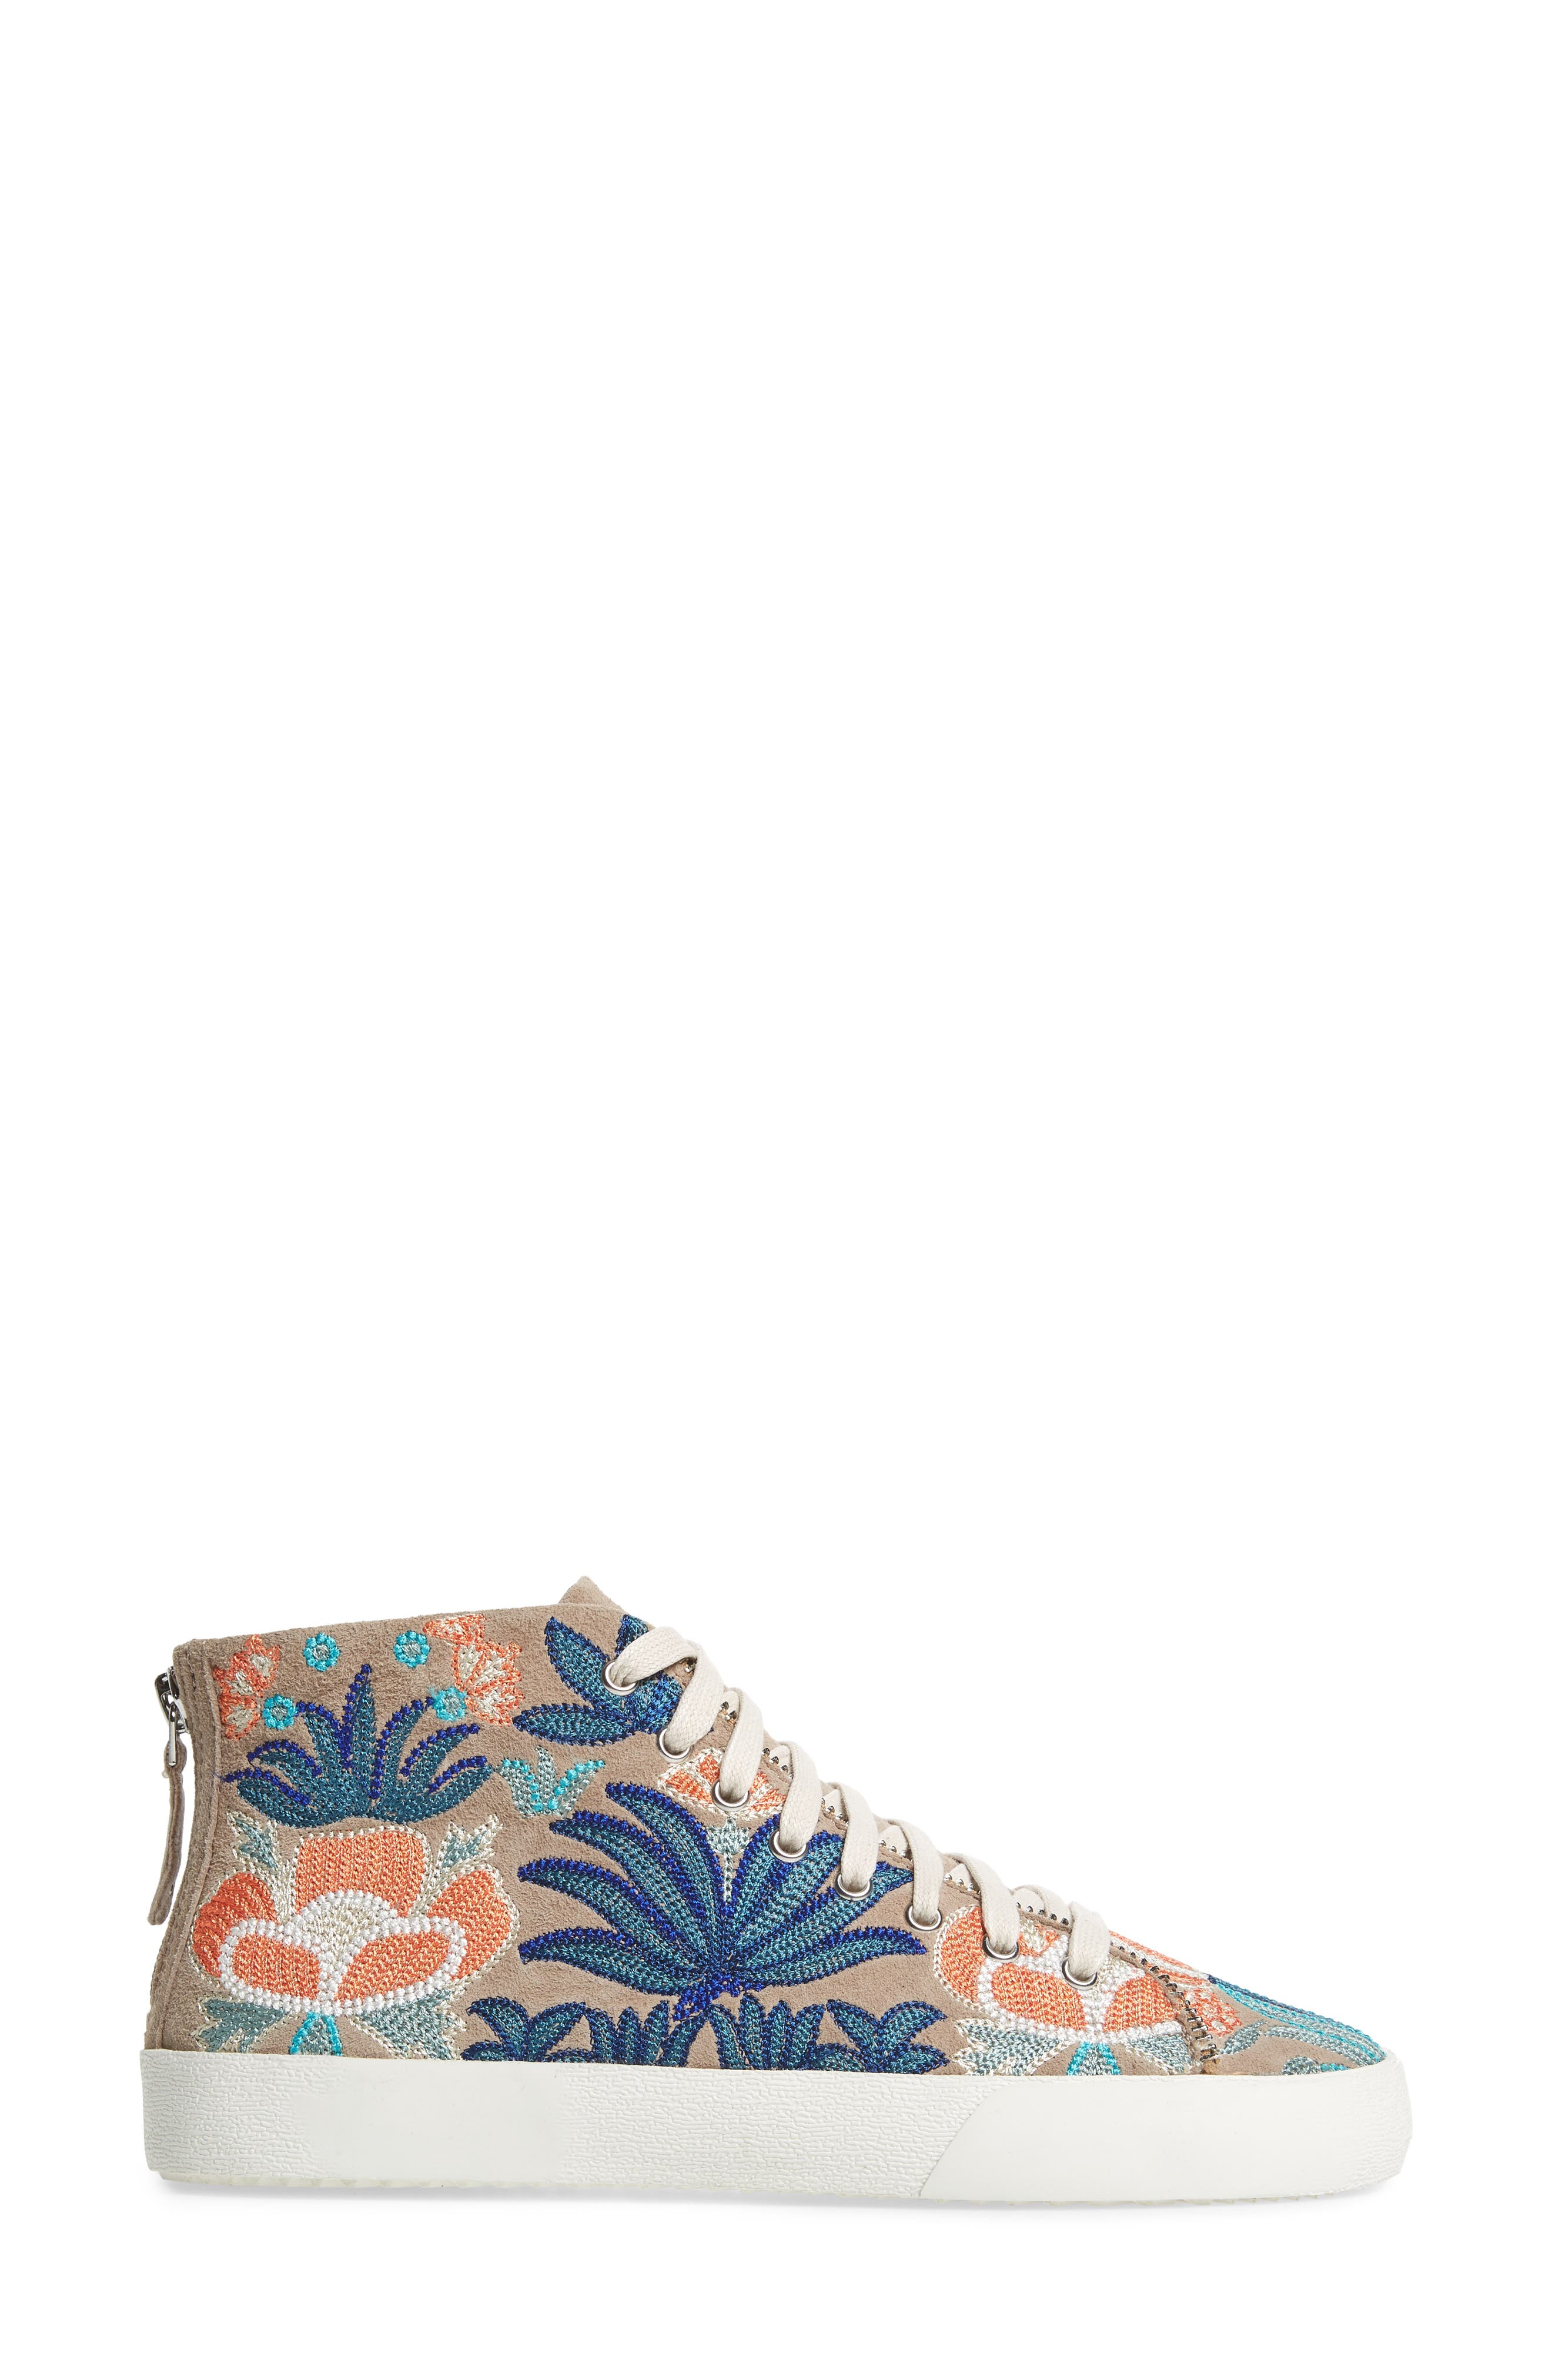 Zaina Embroidered Sneaker,                             Alternate thumbnail 3, color,                             Sand